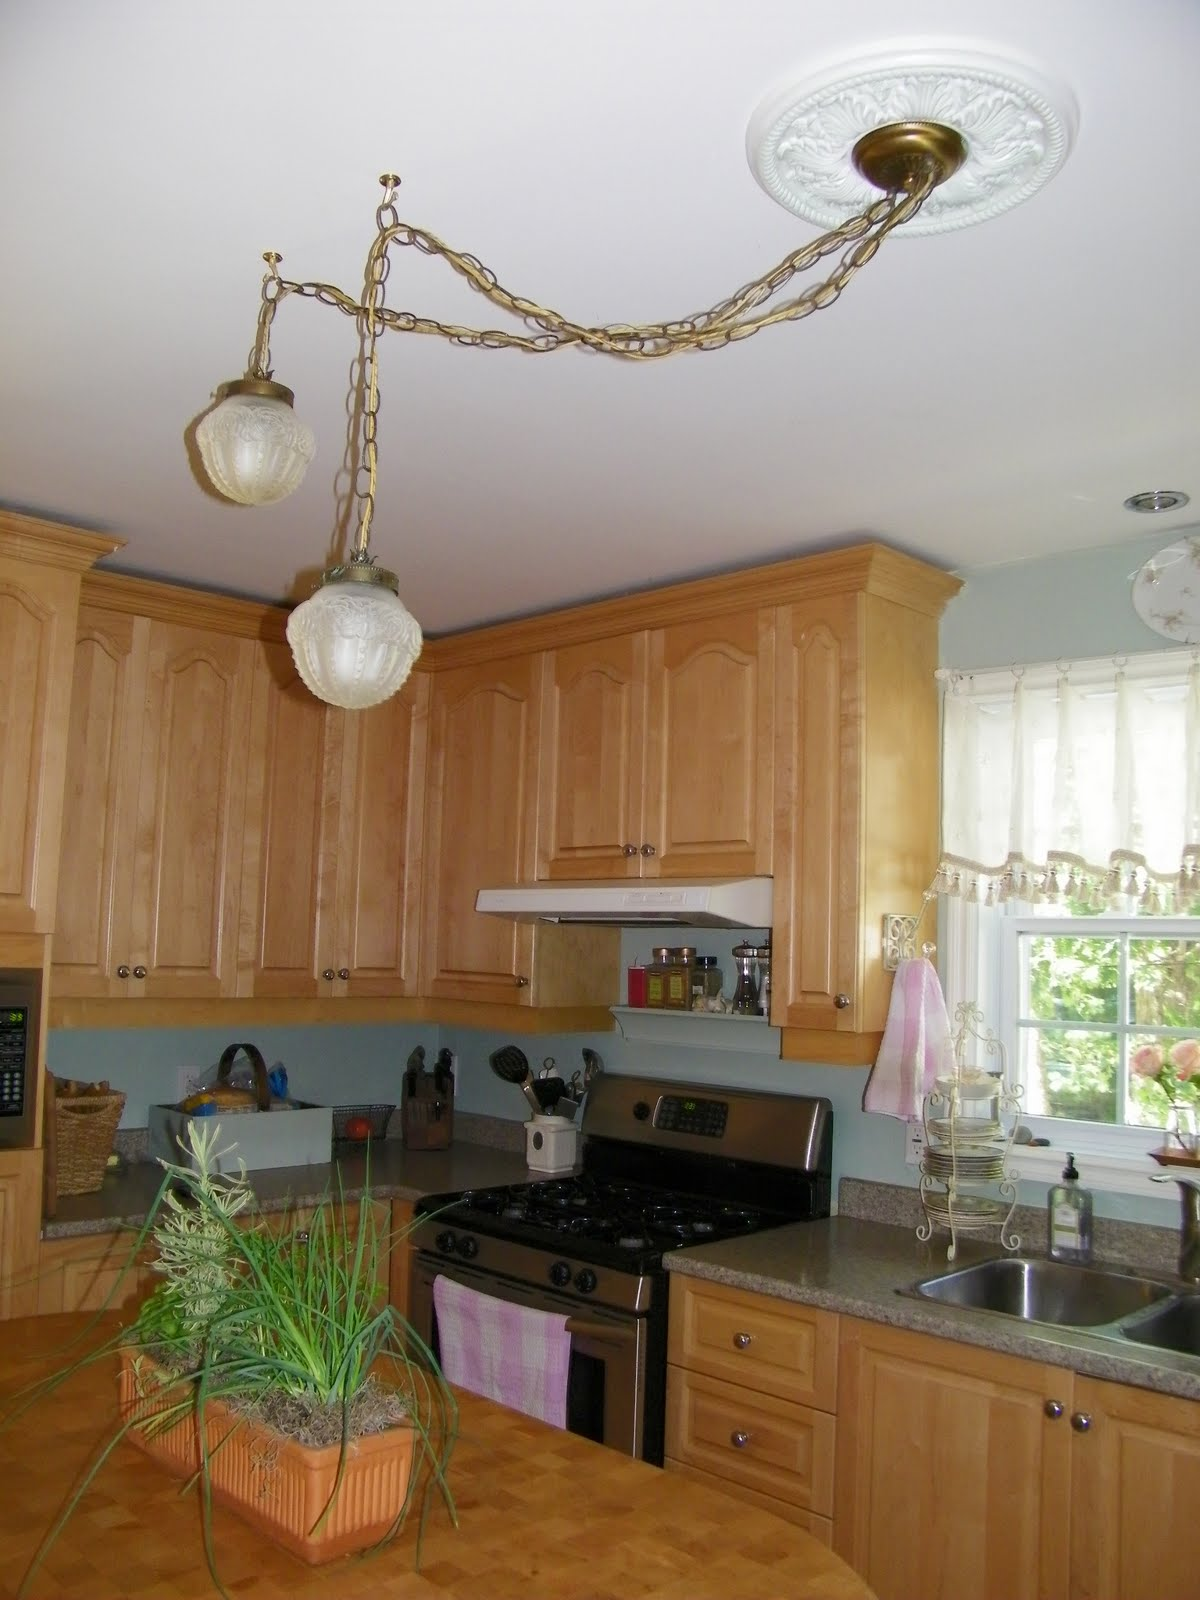 Kitchen table lights -  Kitchen Table Light Fixture Photo 8